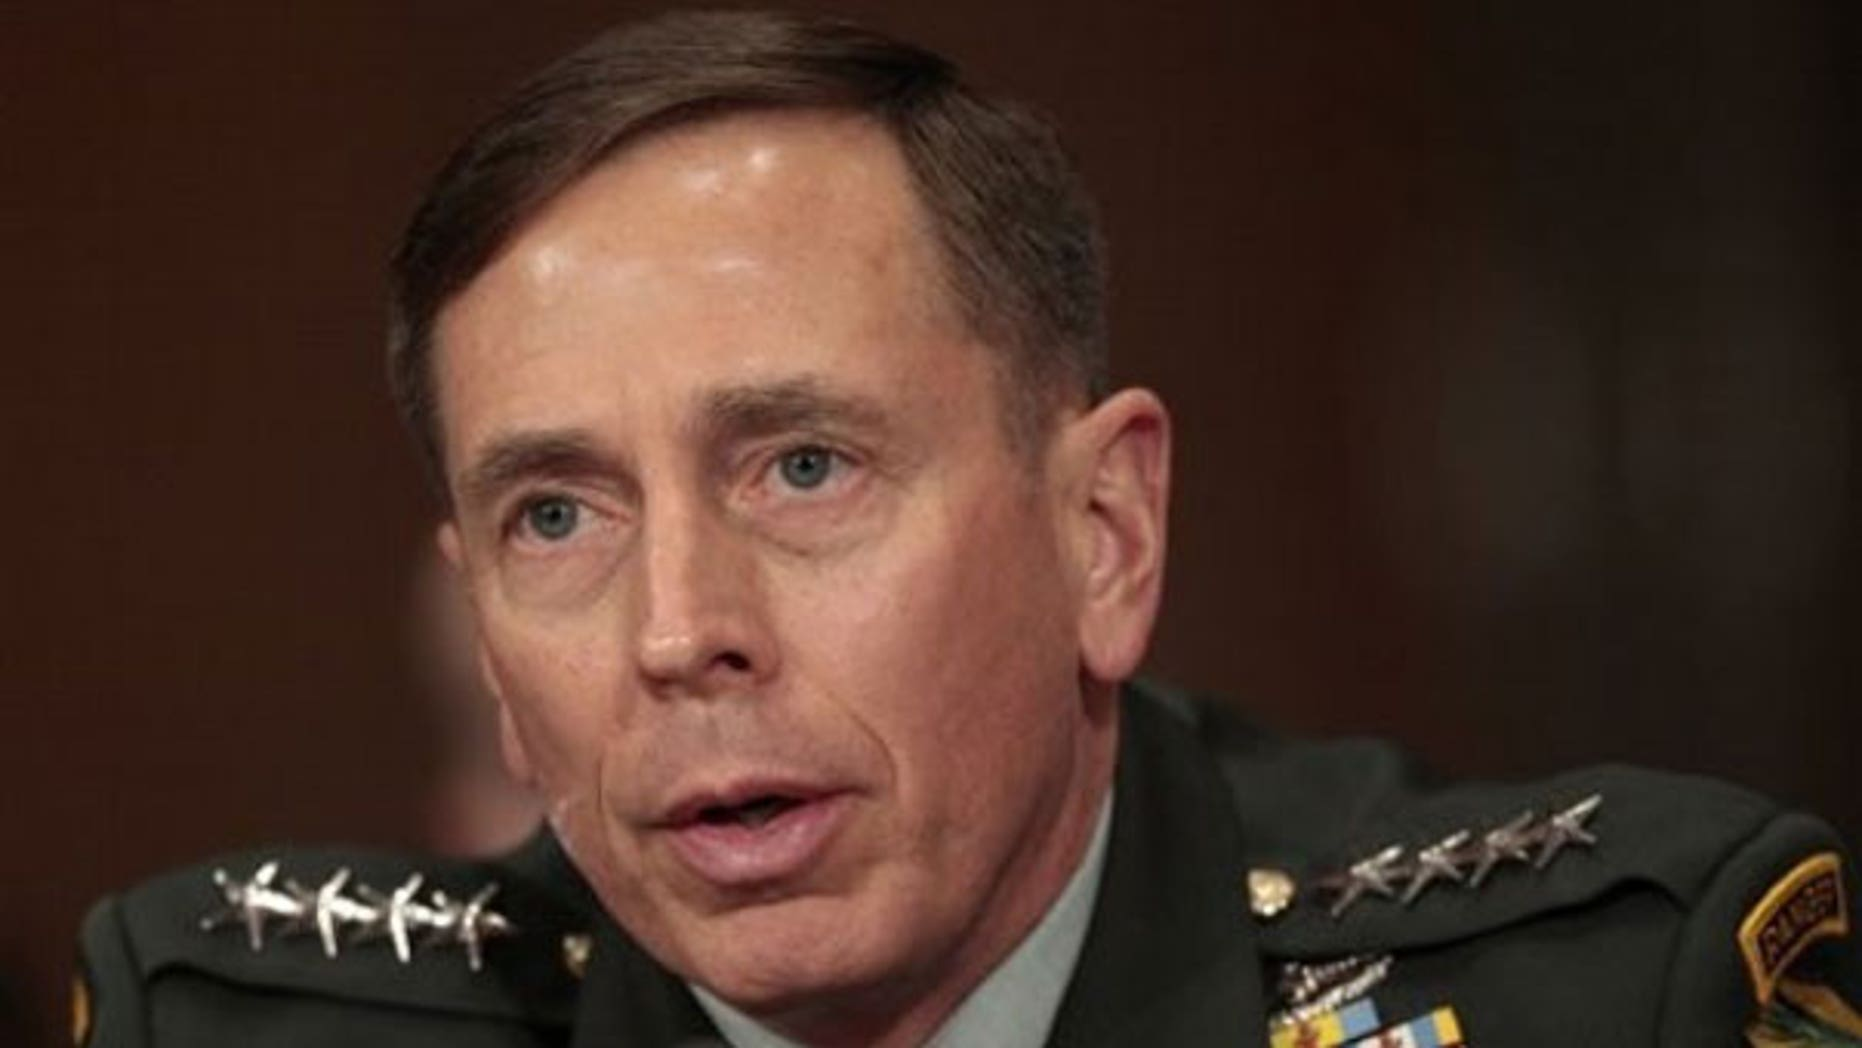 Dec. 9: U.S. Central Command commanding Gen. David Petraeus testifies on Capitol Hill in Washington before the Senate Foreign Relations Committee hearing on Afghanistan (AP).